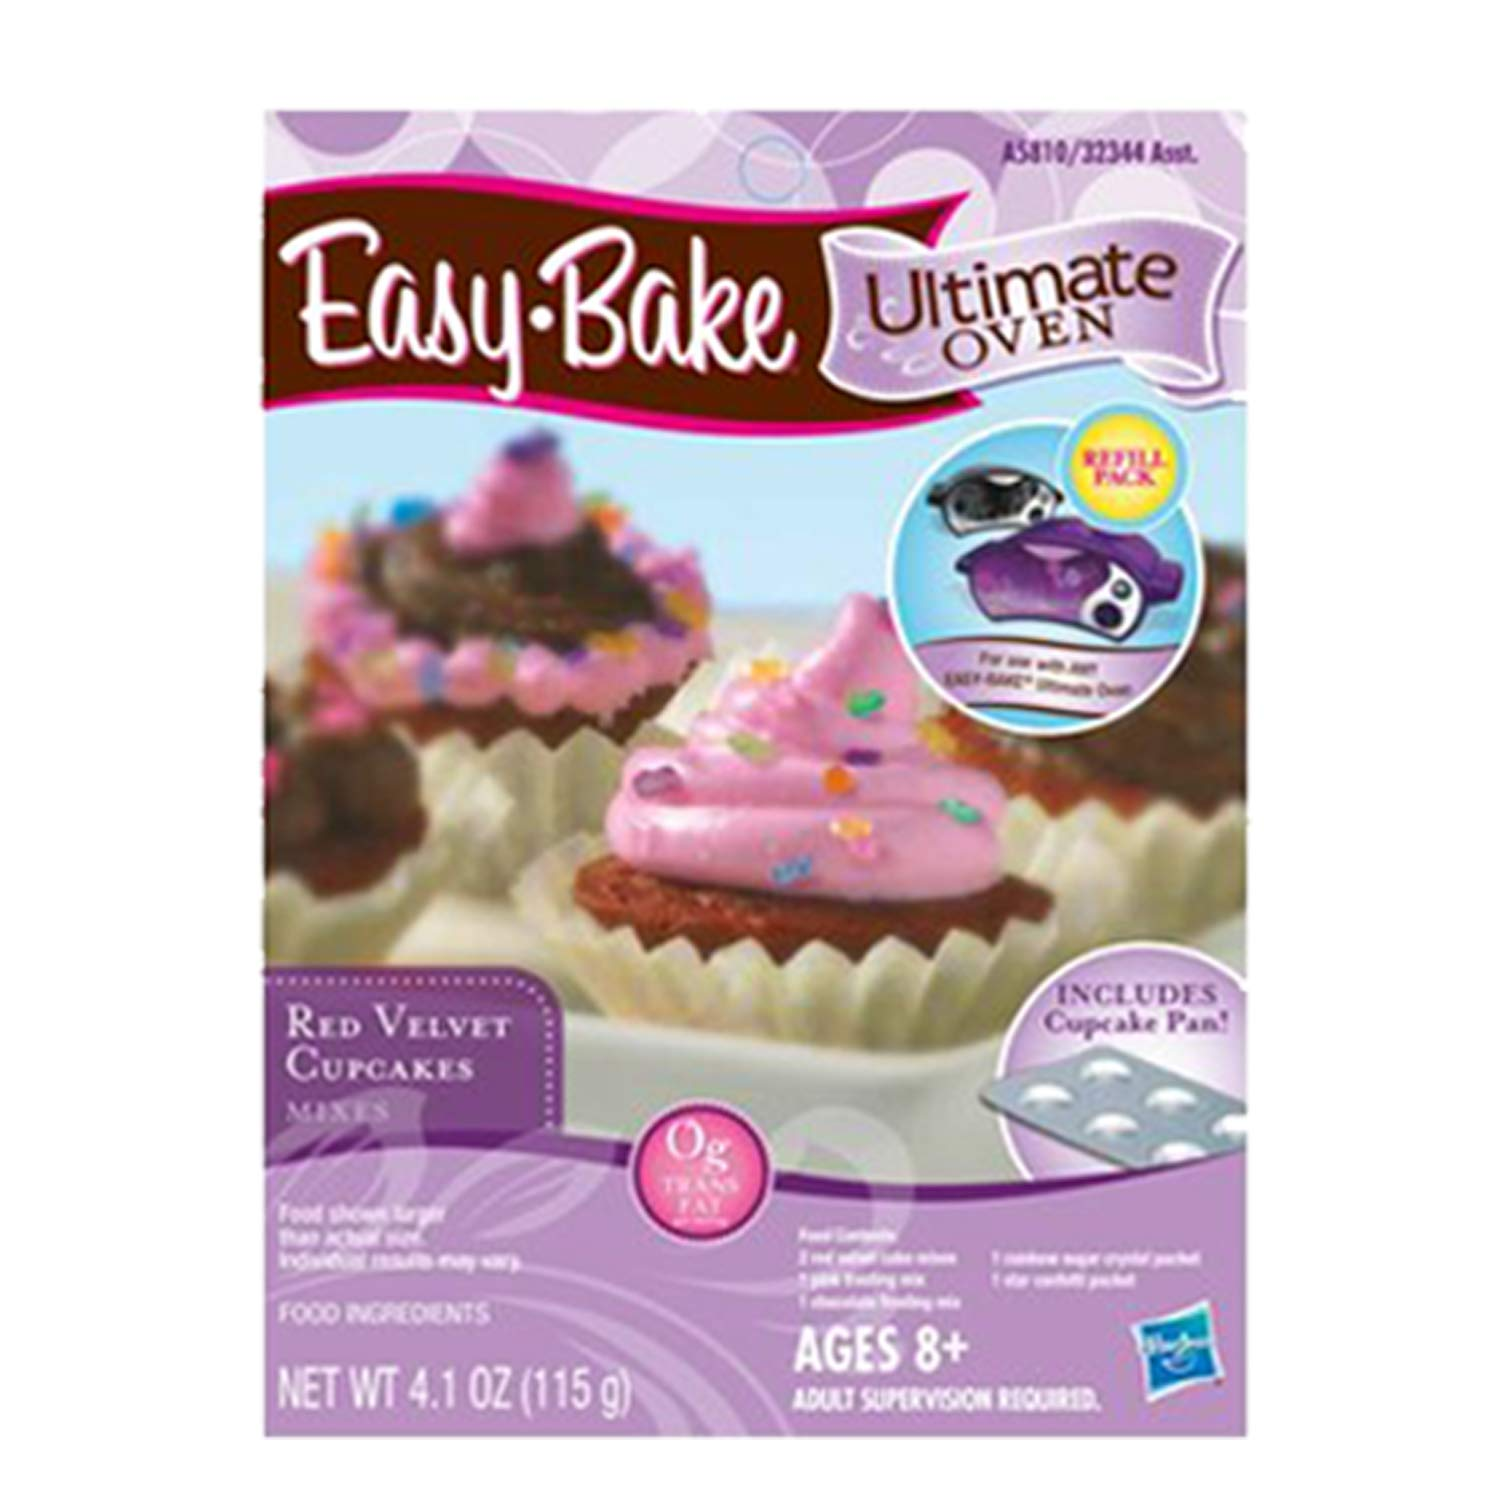 Chocolate Chip and Pink Sugar Refill Red Velvet Cupcakes Refill FIVE DEALS Easy Bake Oven Star Edition Party Pretzel Refill Pack Mini Whisk.